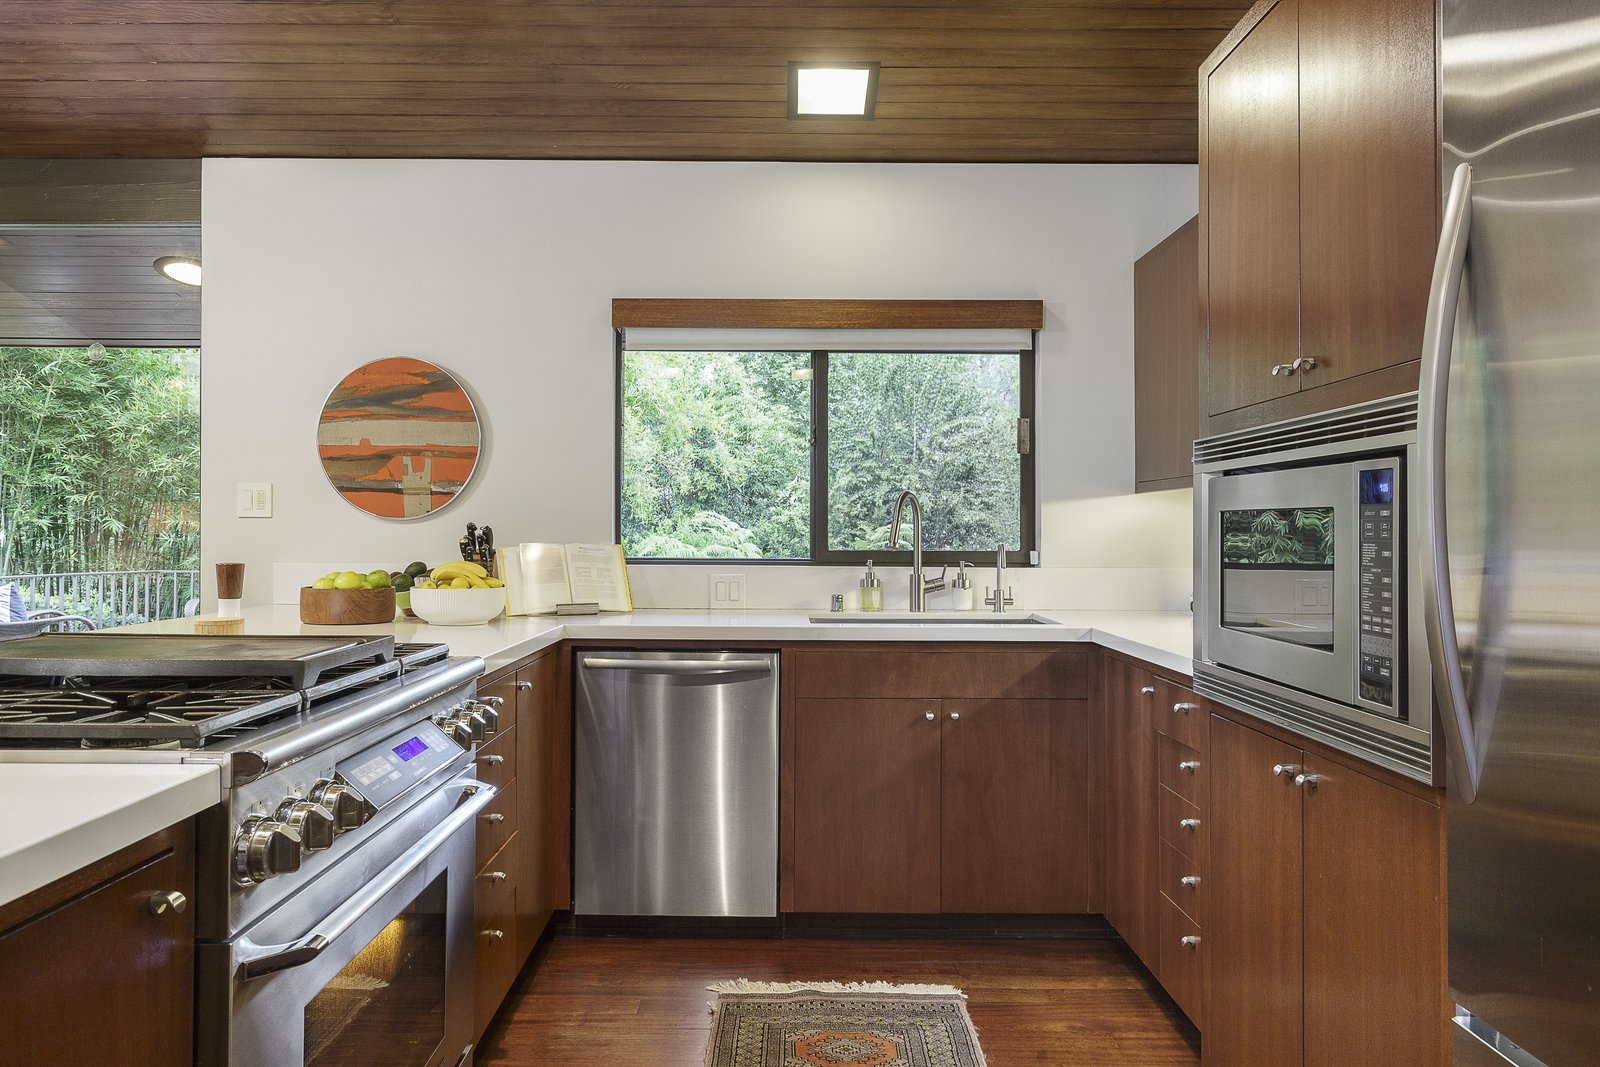 Kitchen, Ceiling Lighting, Range, Refrigerator, Wood Cabinet, Dark Hardwood Floor, Undermount Sink, Recessed Lighting, Dishwasher, and Microwave The kitchen also has direct access to the outdoor deck and a deluxe barbeque station.  Photo 7 of 17 in A Southern Californian Midcentury With Japanese Influences Asks $3.13M